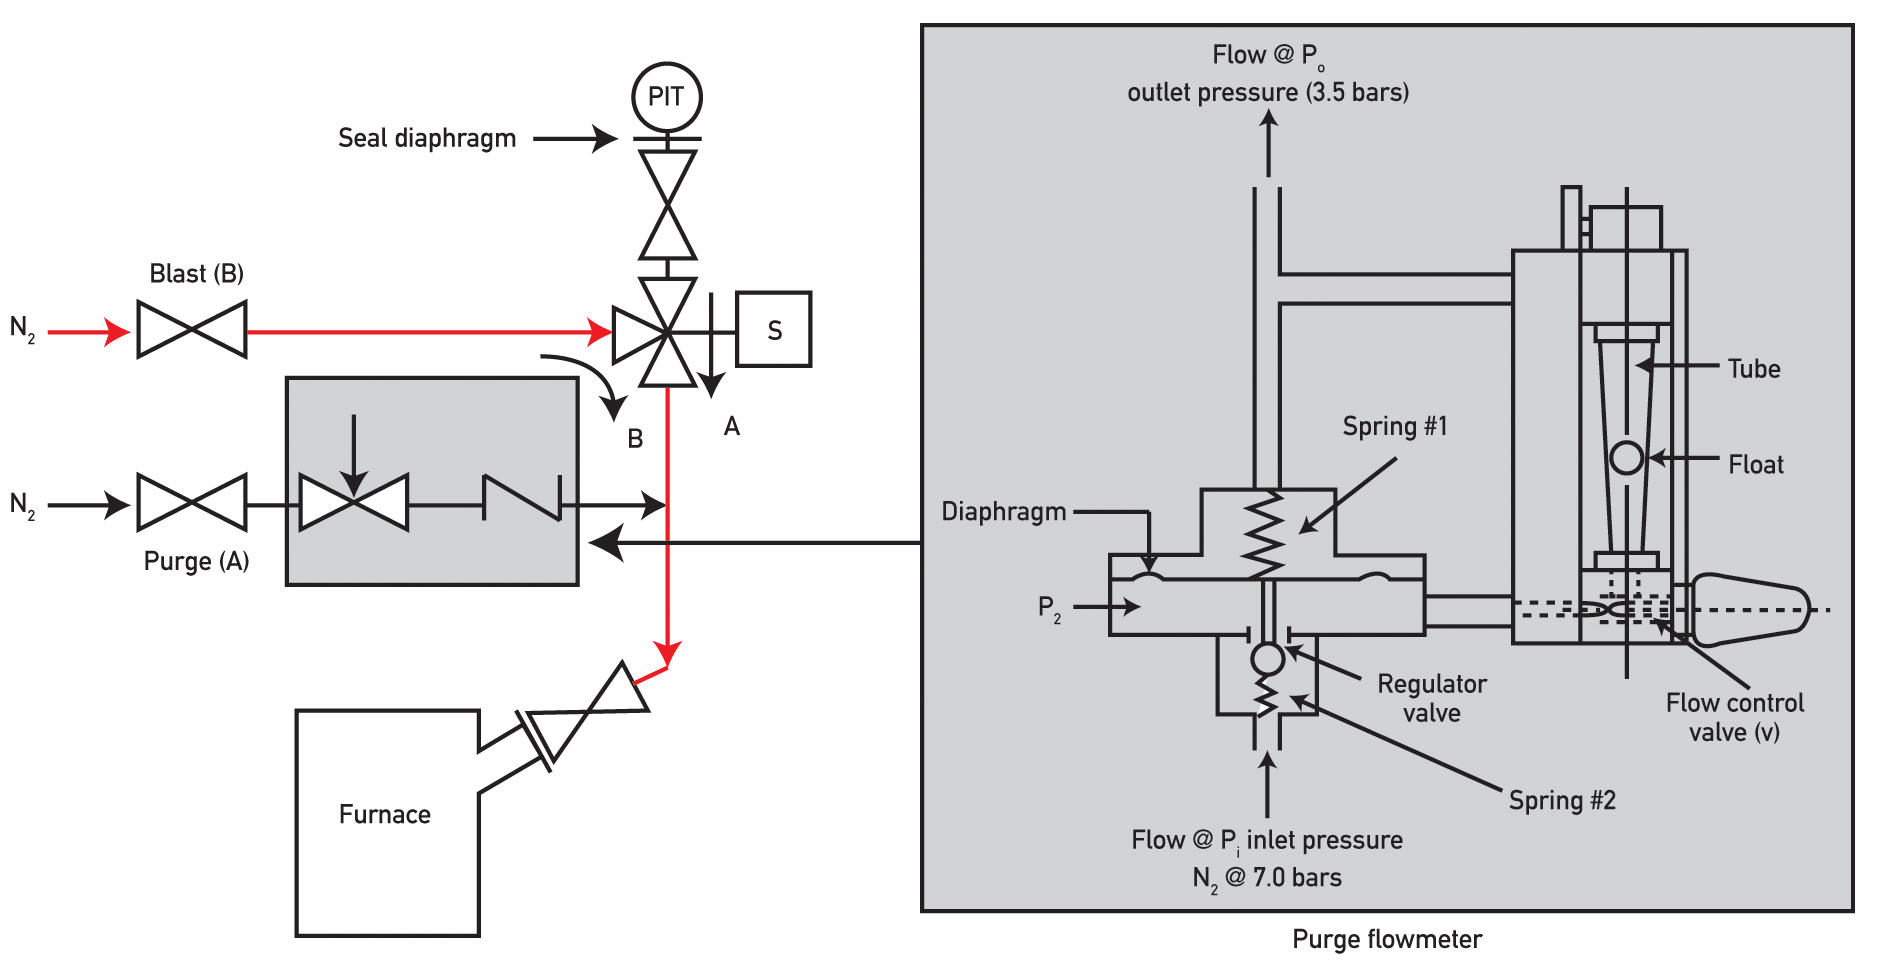 Wiring Diagram Of Flow Switch Excellent Electrical Water Pressure Ask The Experts Plugged Furnace Connection Fire Alarm